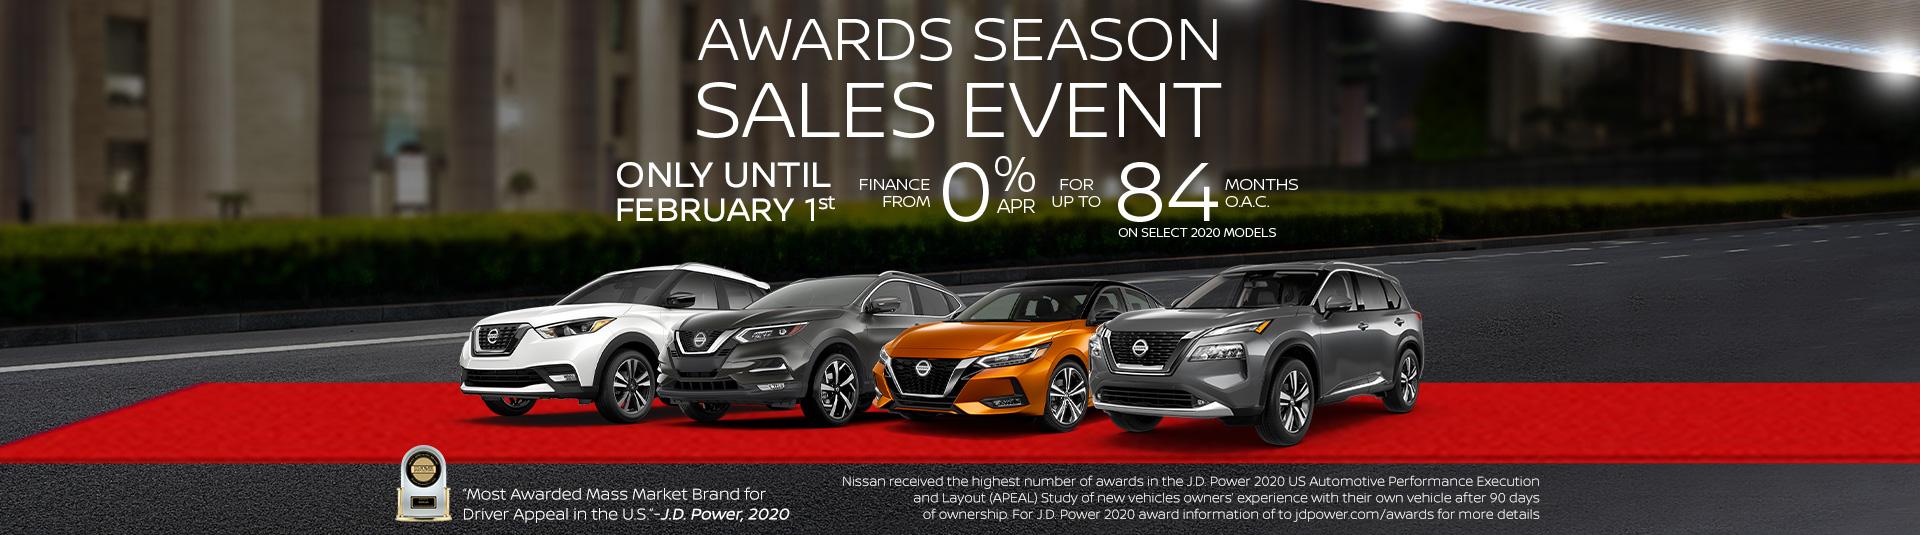 Awards Season Sales Event at Avenue Nissan